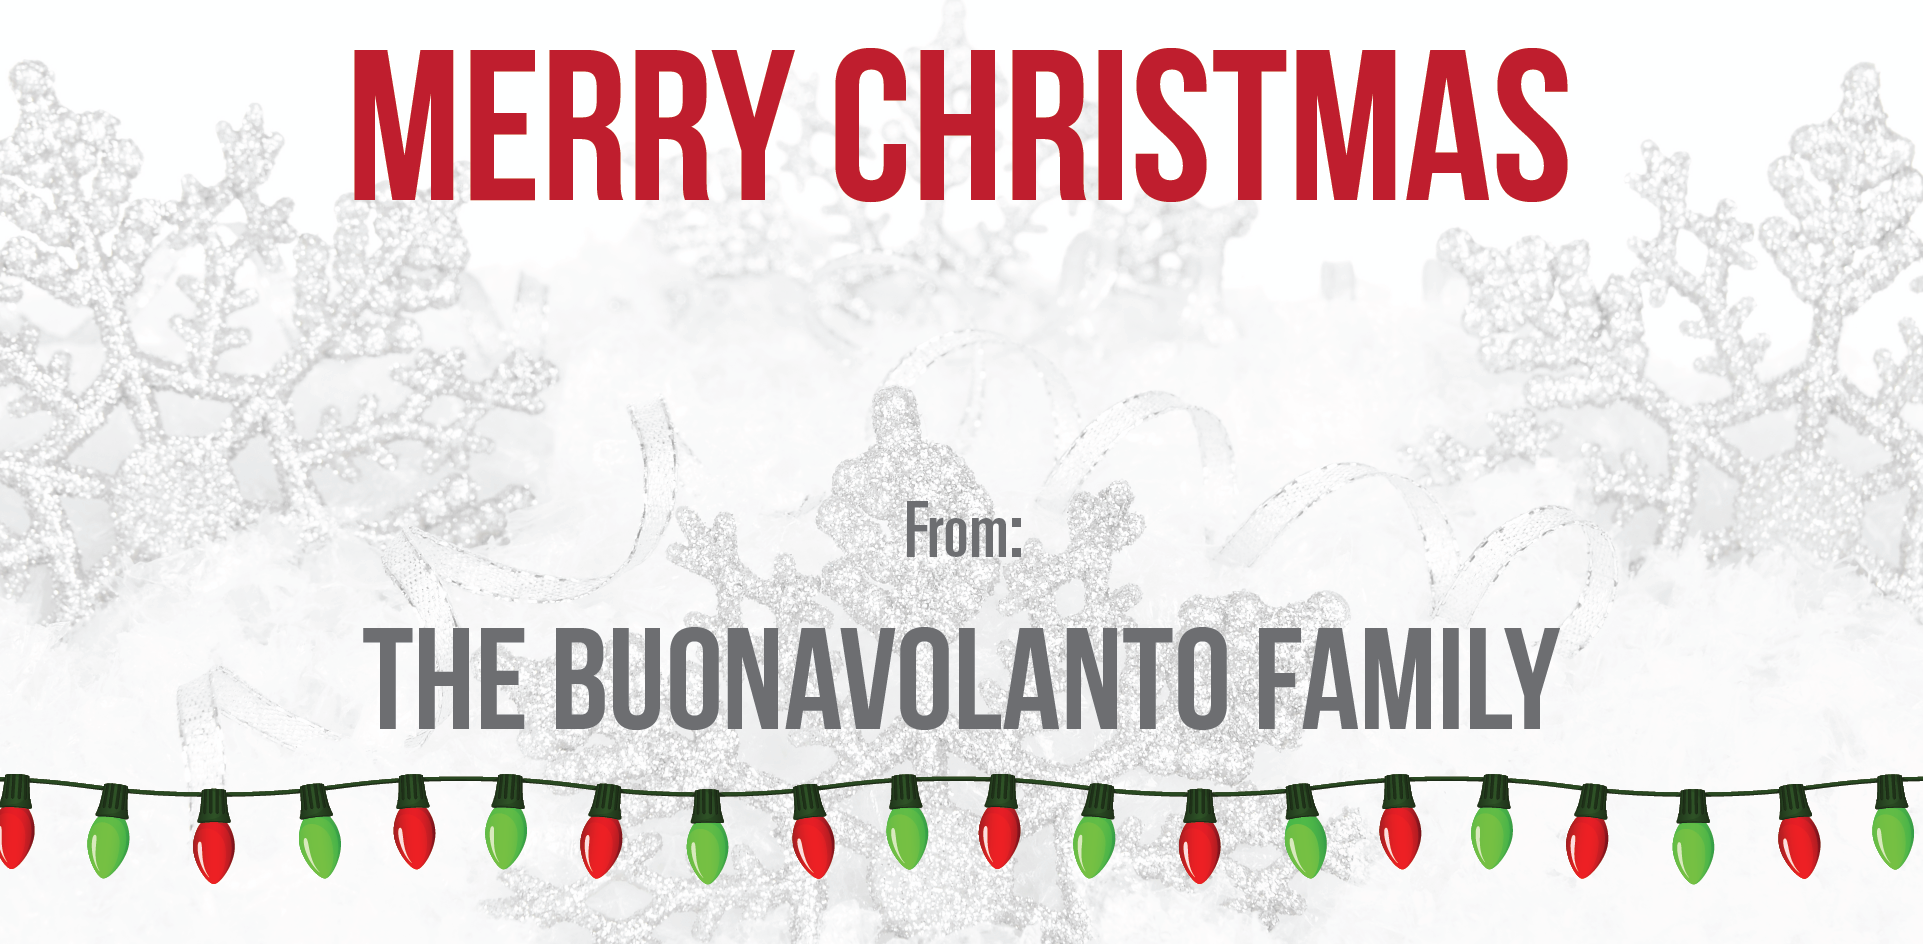 From our family to yours, the Buonavolanto\'s would like to wish ...